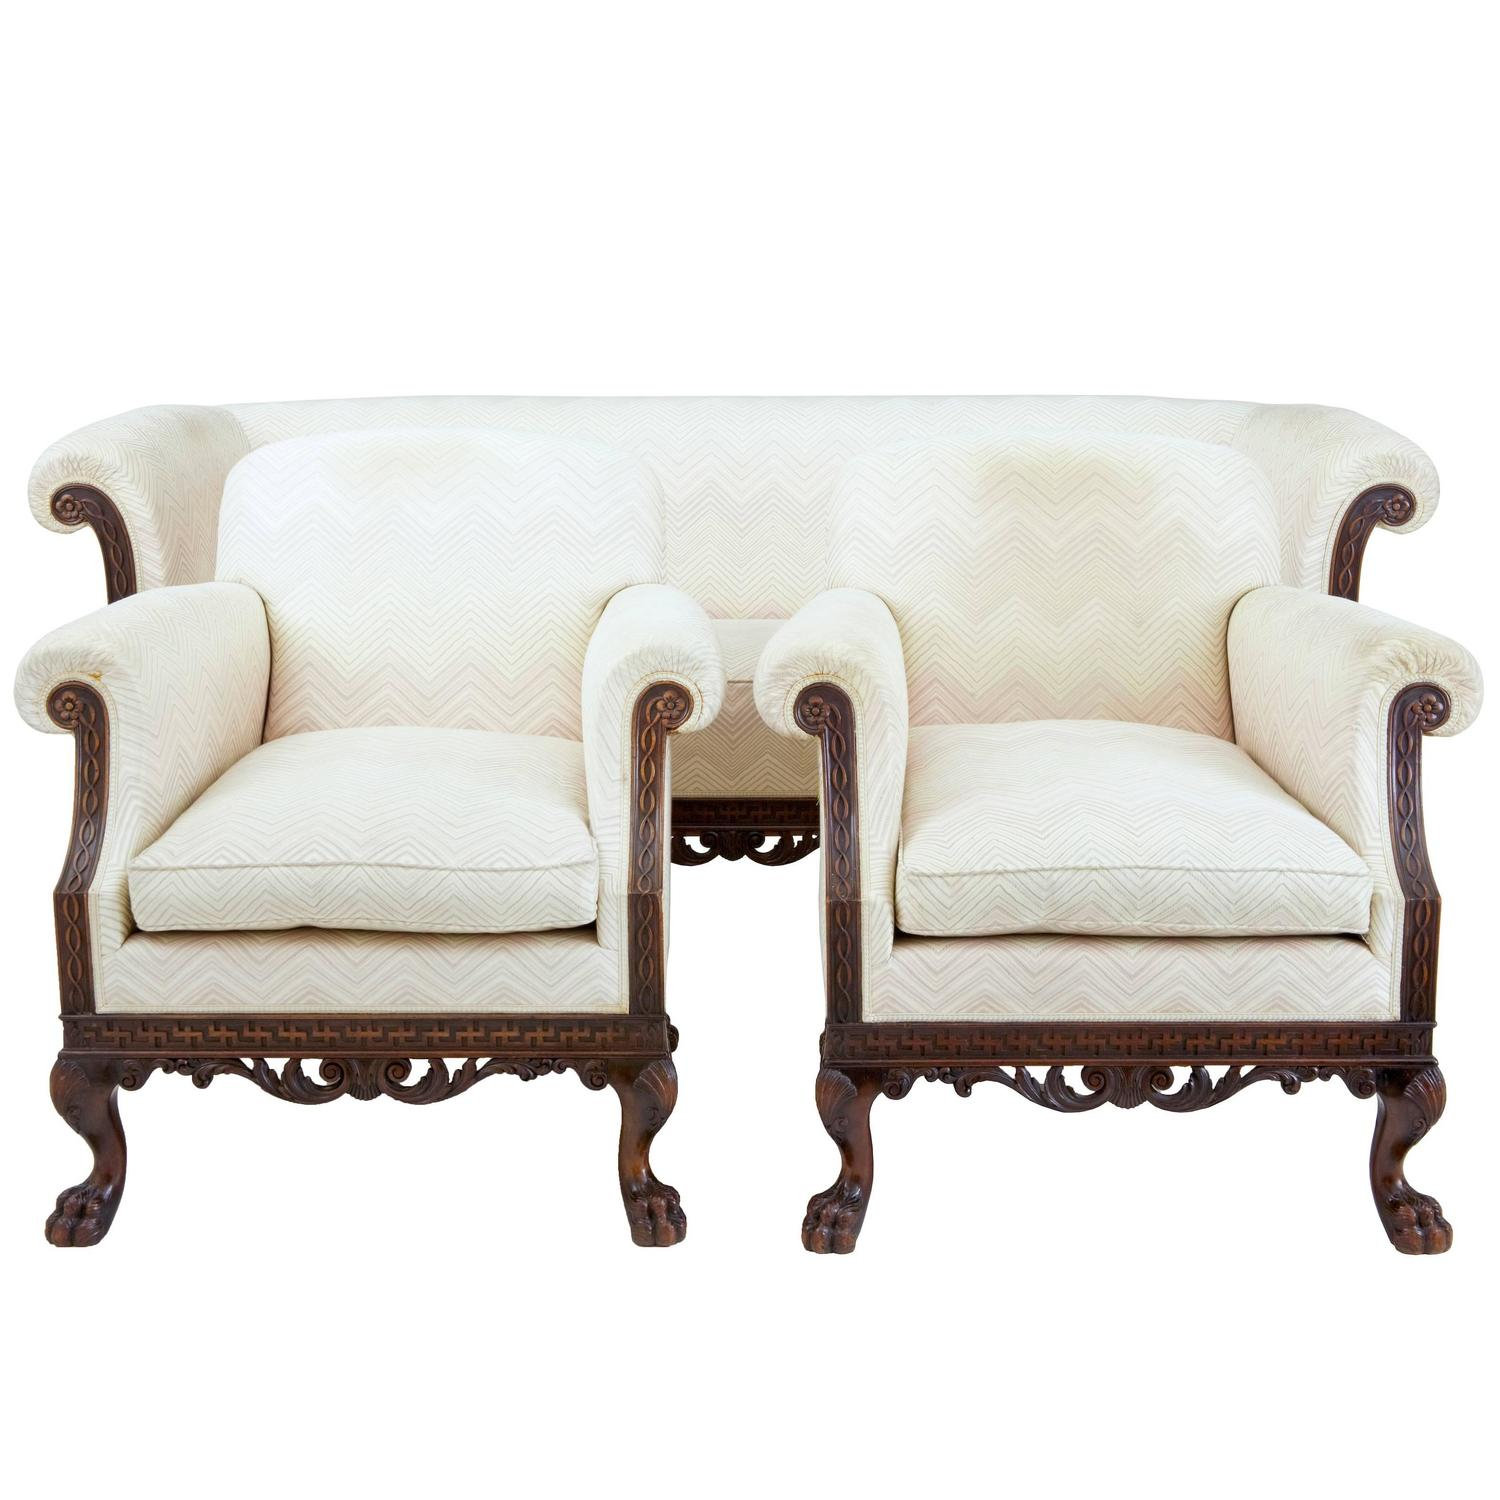 Early 20th Century Chippendale Influenced Three Piece Suite Sofa Chairs For Sale At 1stdibs